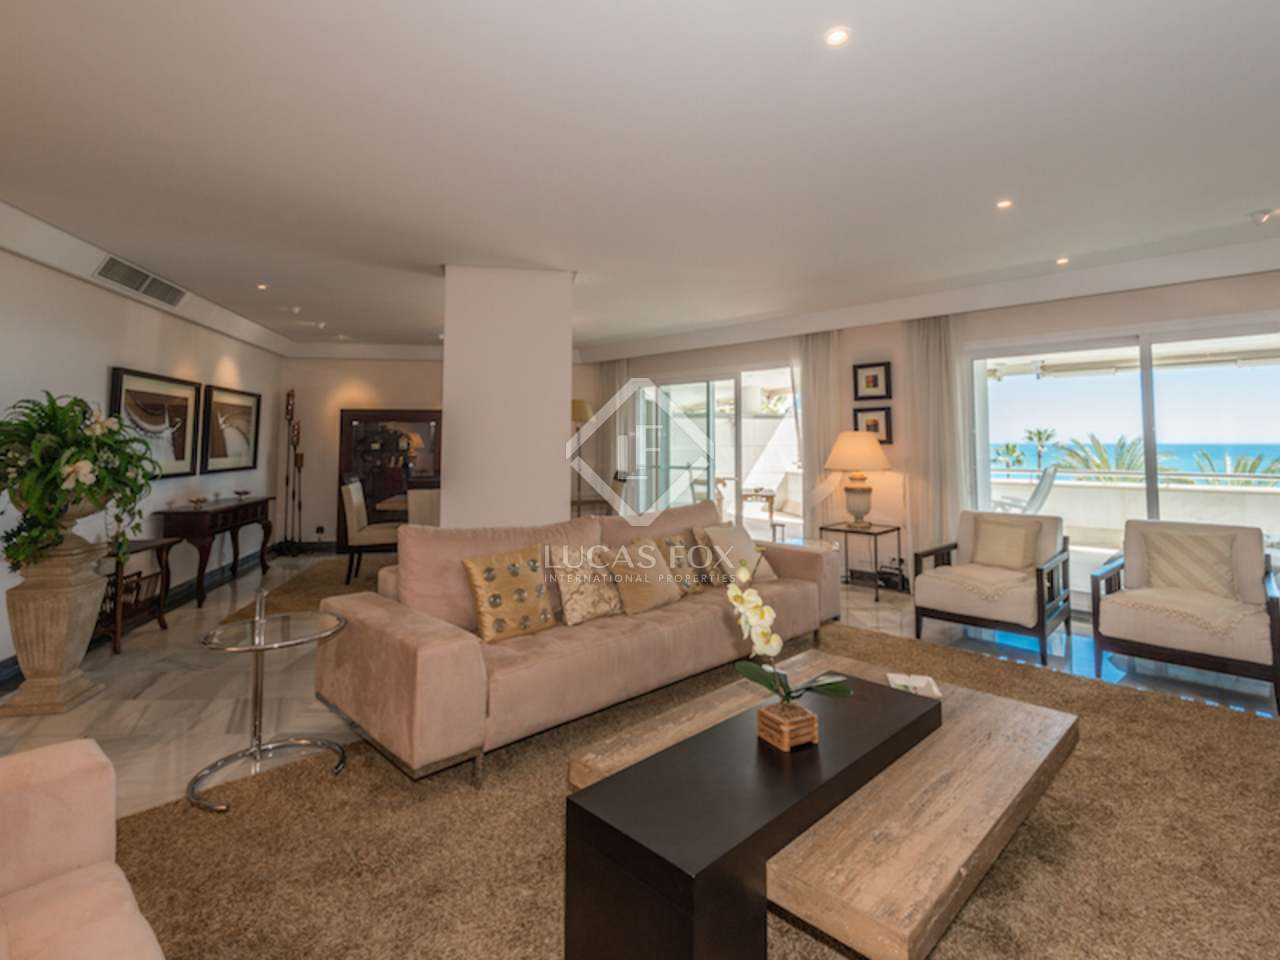 Luxury front line beach apartment for sale marbella centre for 4 bedroom luxury apartments